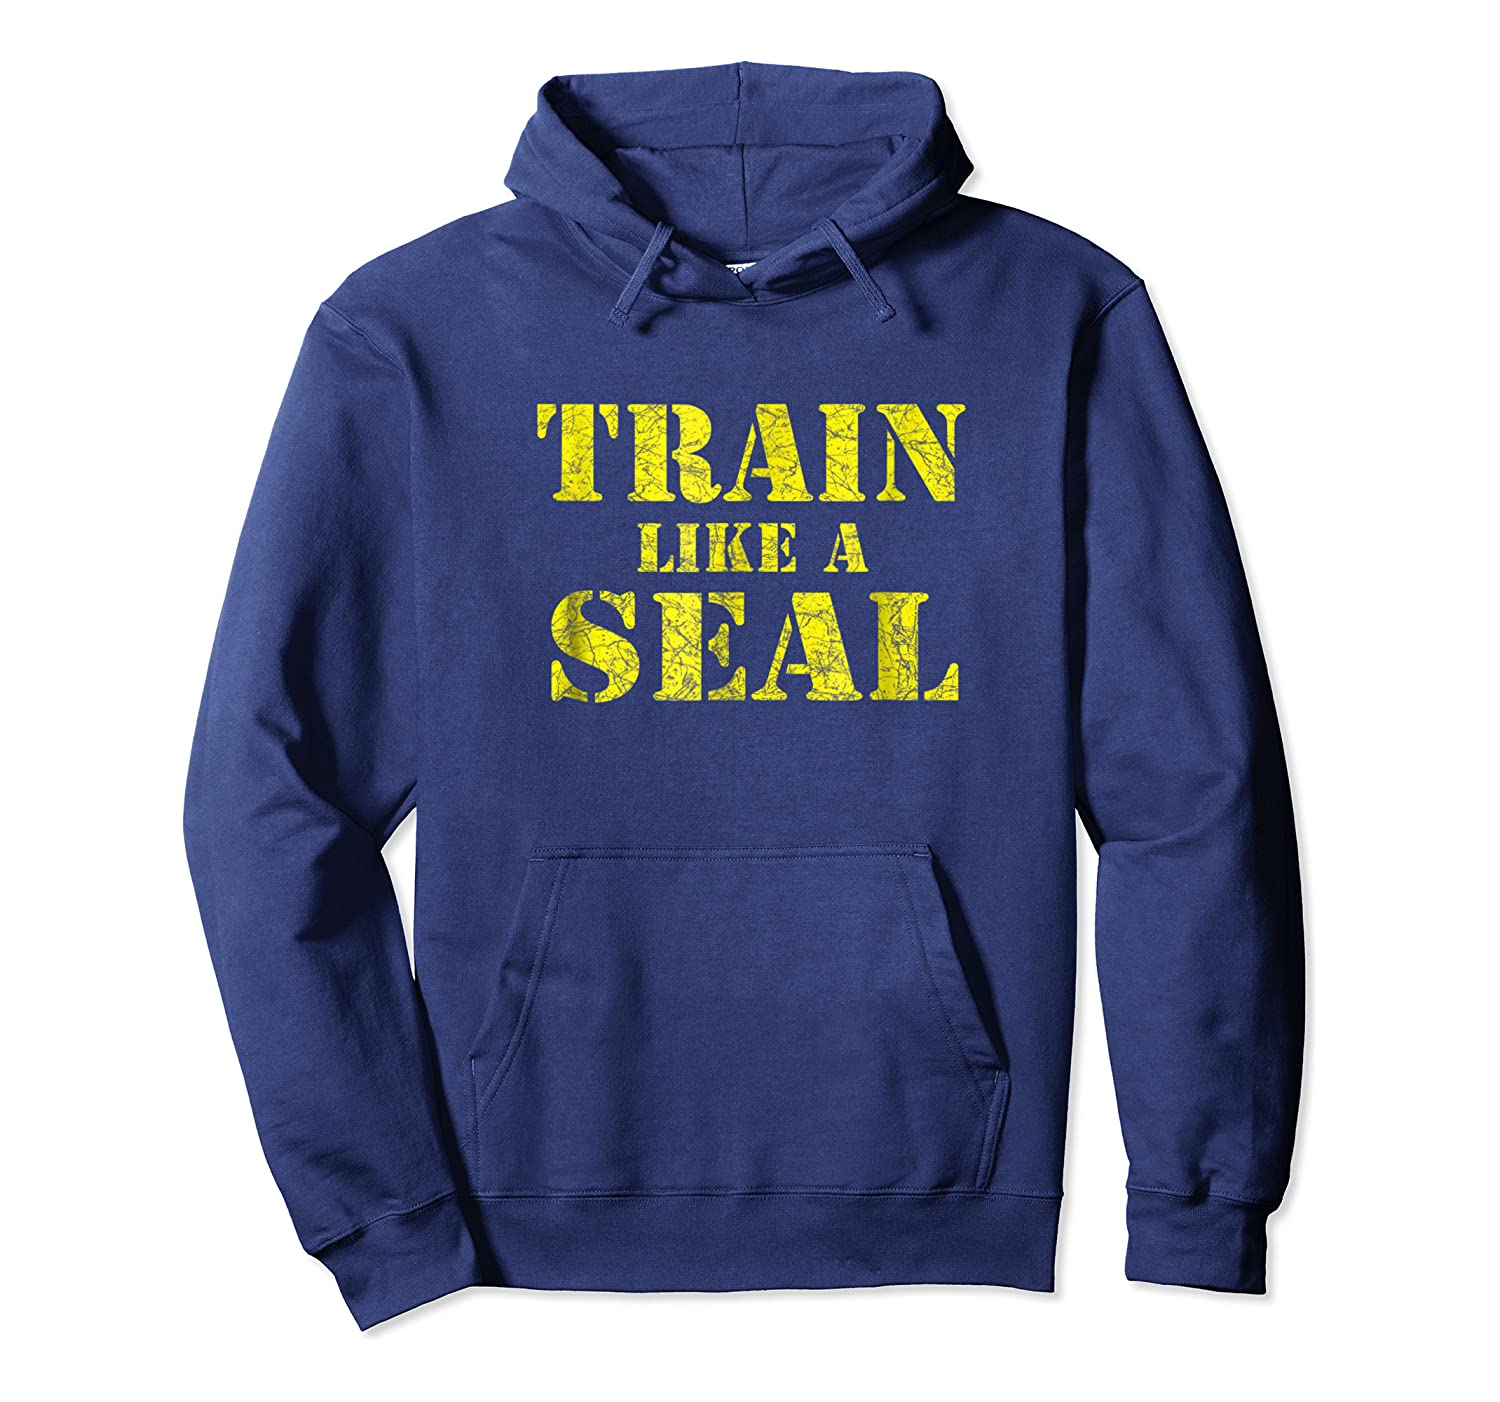 Like A Navy Seal Navy Seal Armed Forces Shirts Unisex Pullover Hoodie